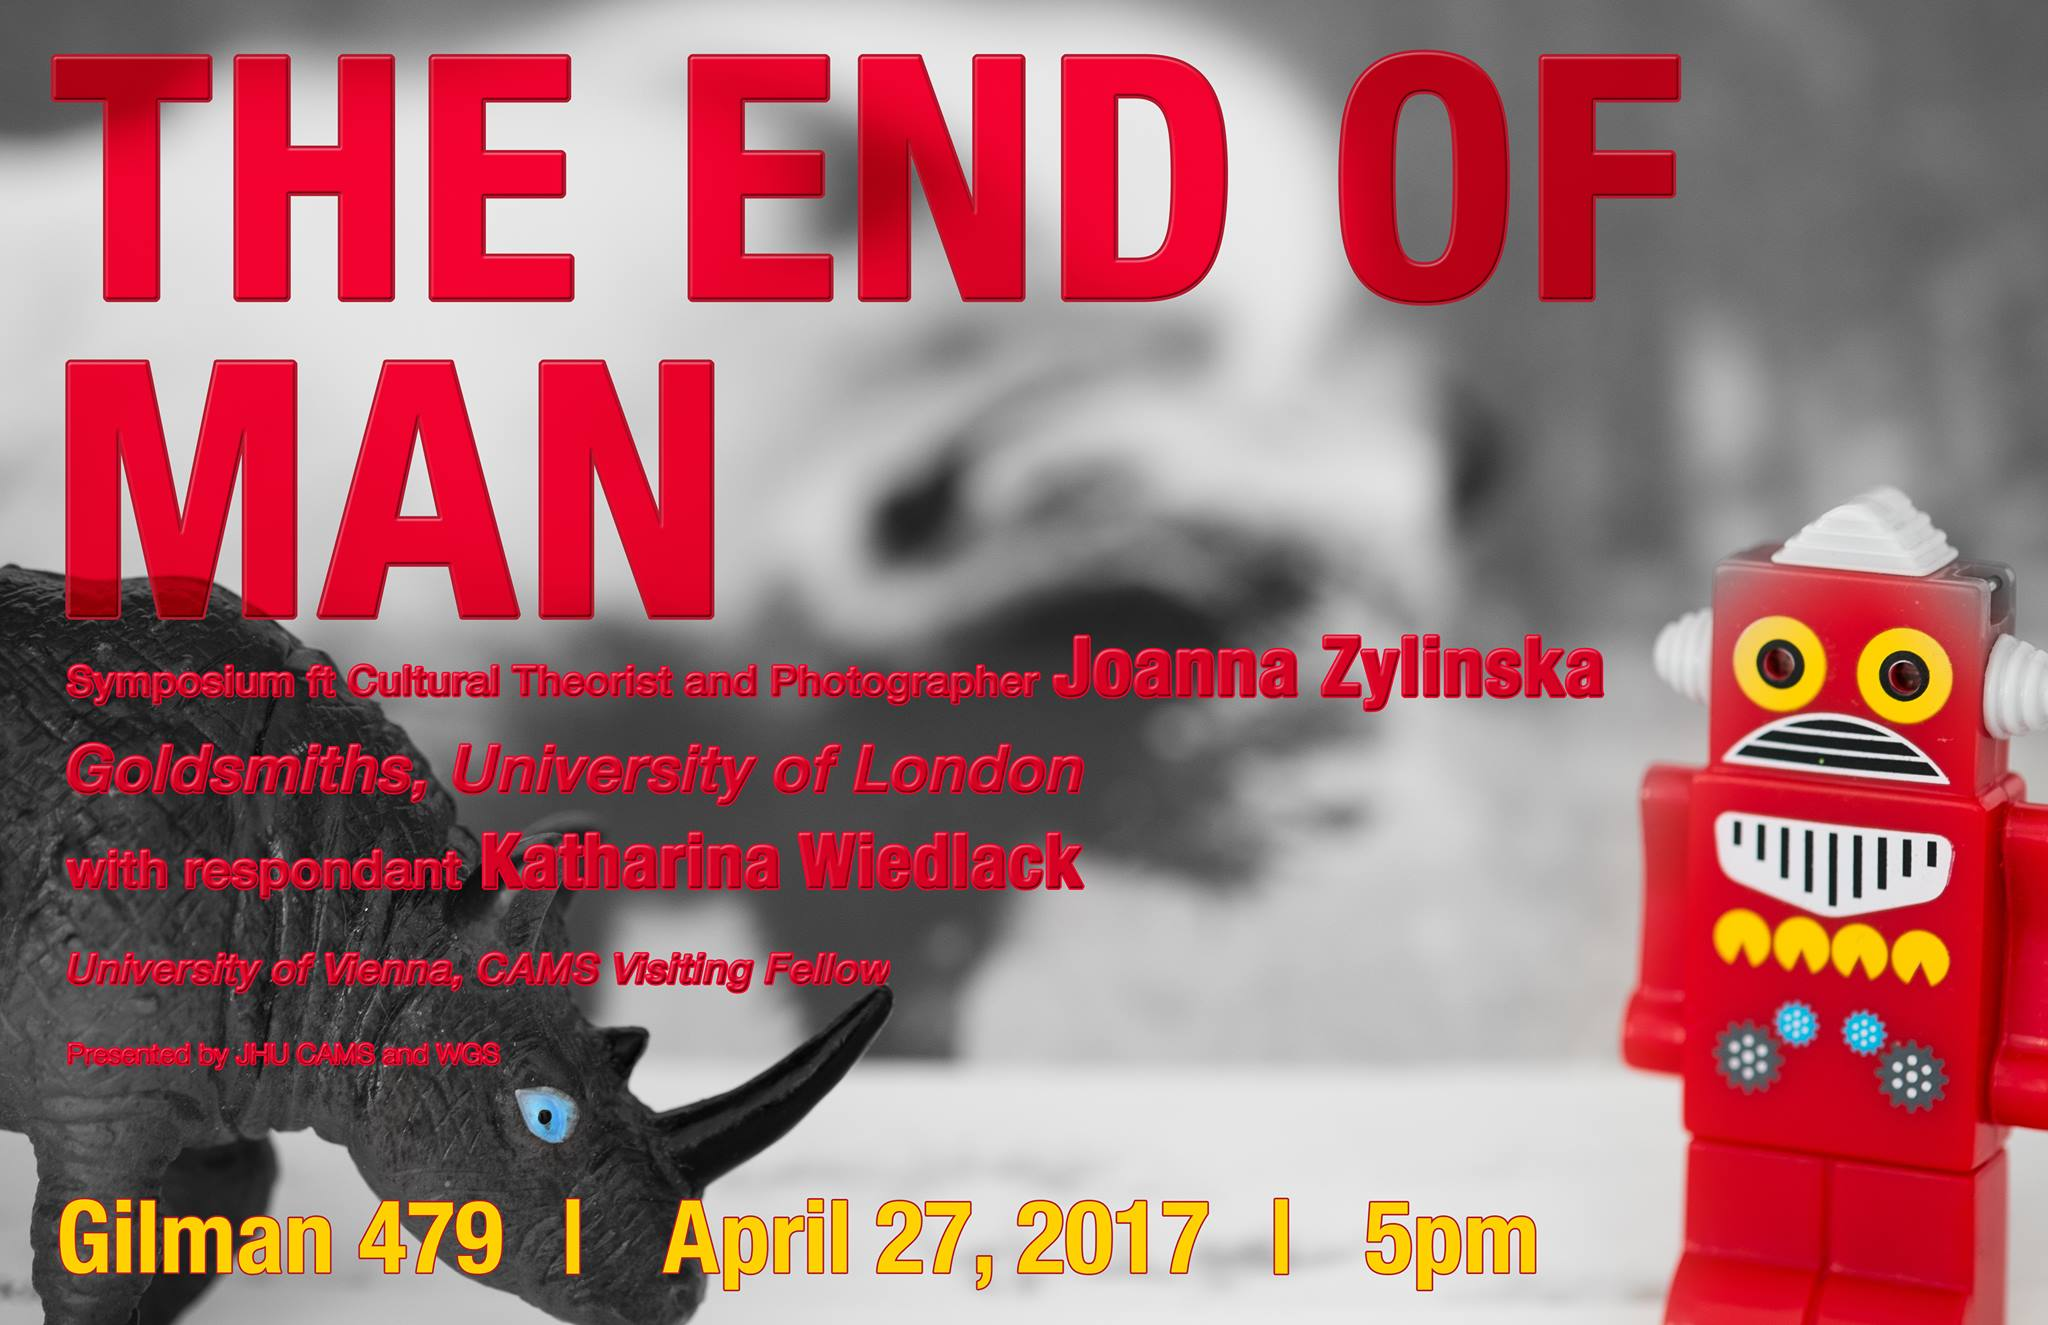 The End of Man Symposium